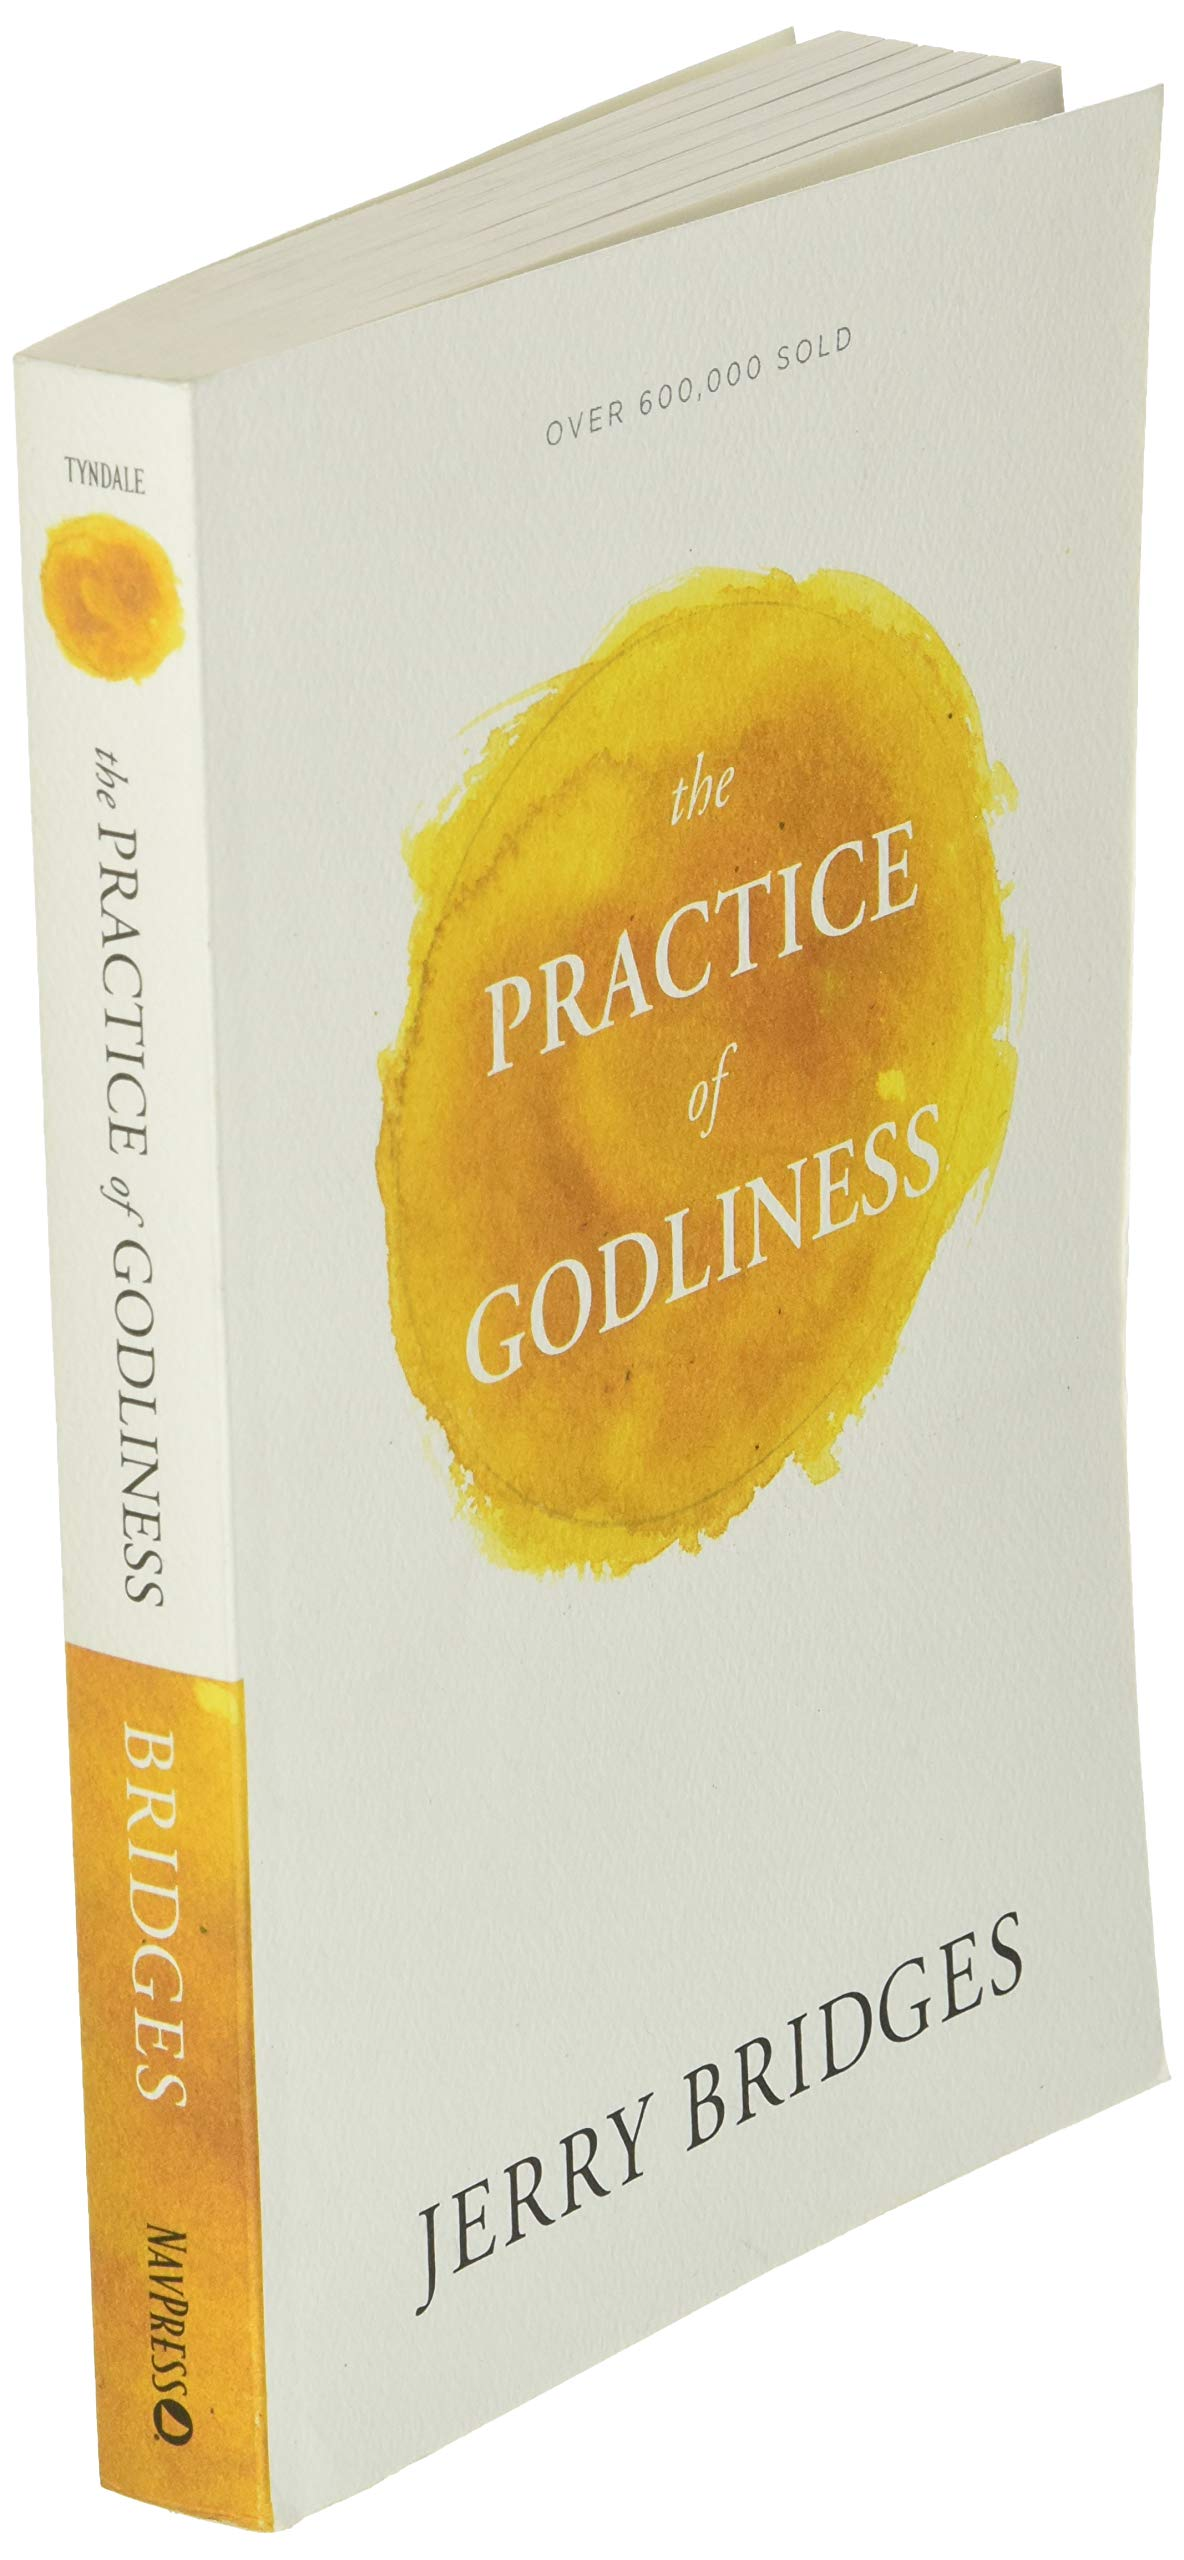 Ebook The Practice Of Godliness By Jerry Bridges